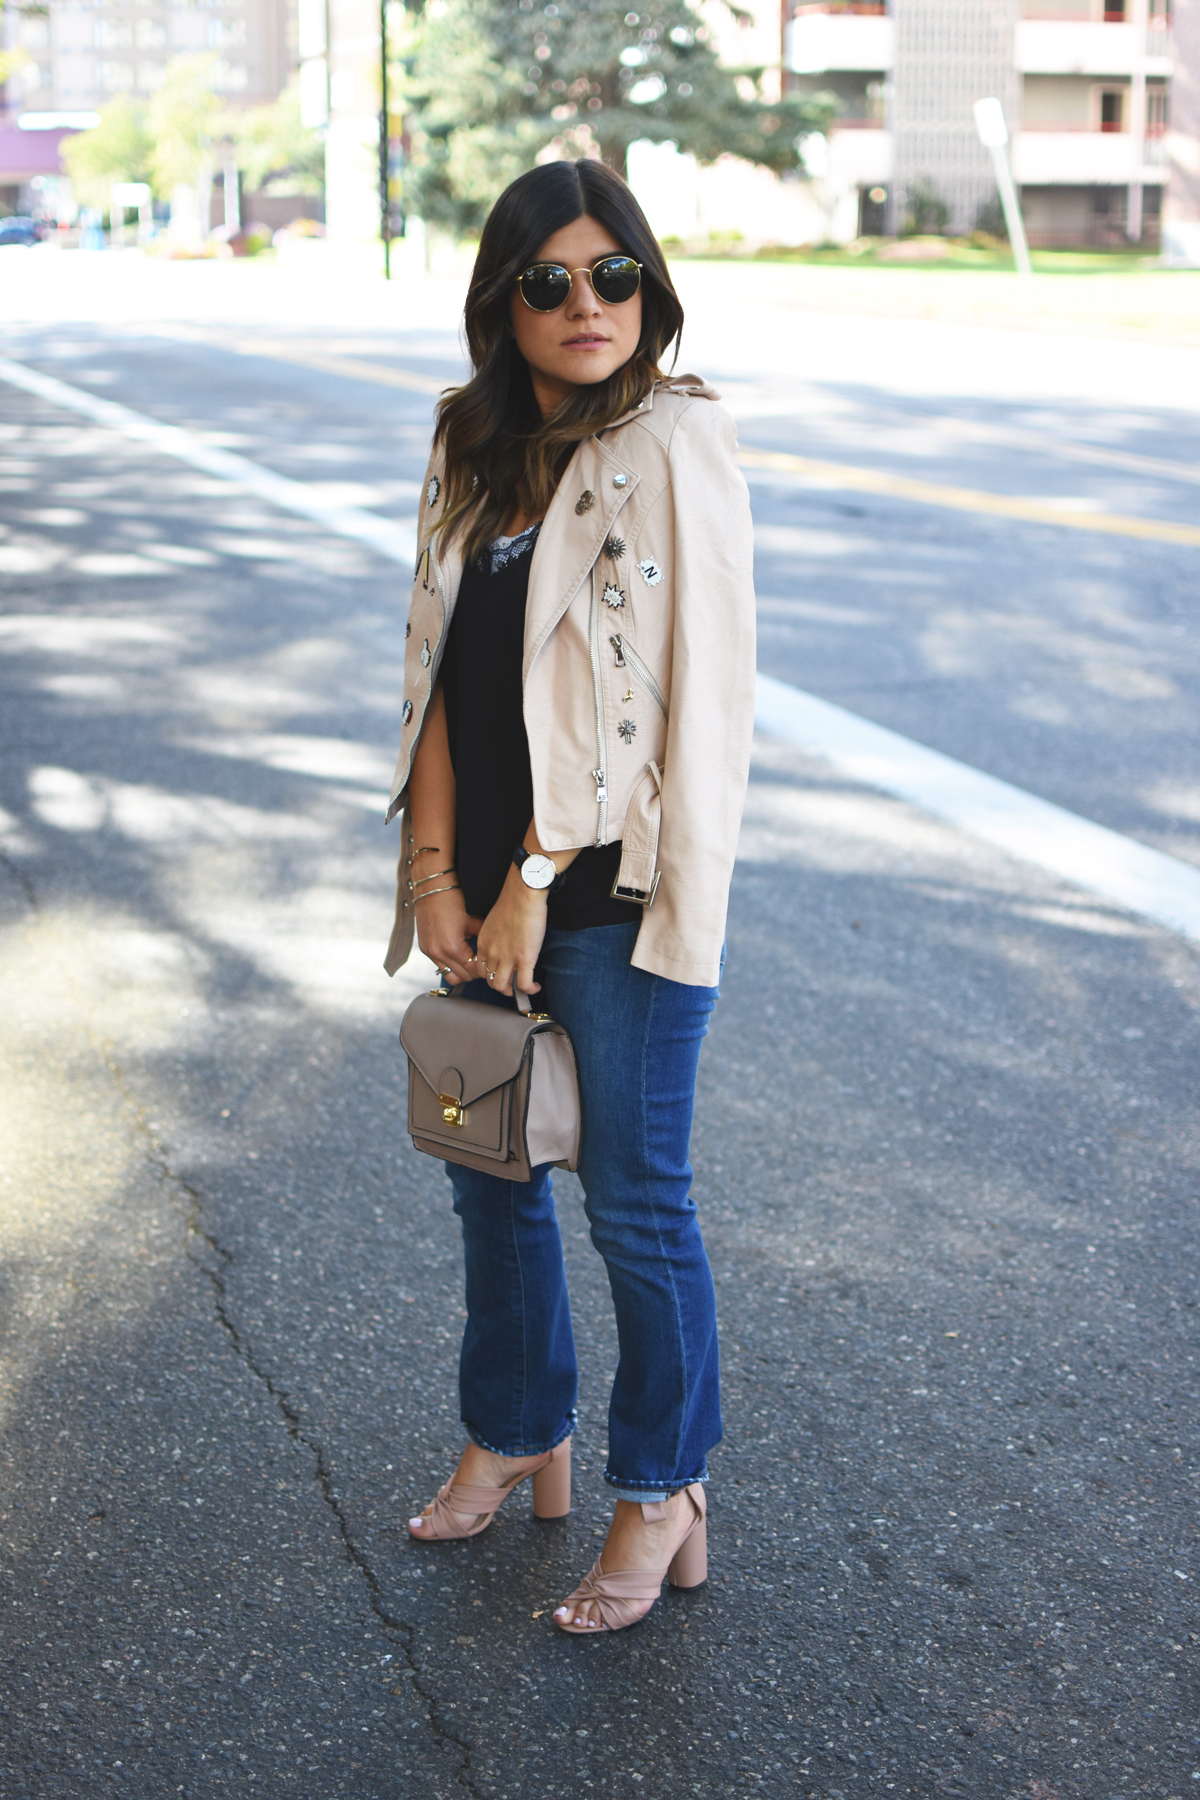 Carolina Hellal of Chic Talk wearing a Dezzal blush faux leather jacket, Forever 21 lace black camisol, Madewell jeans, Rayban rounded sunglasses, and Topshop blush lace up sandals.